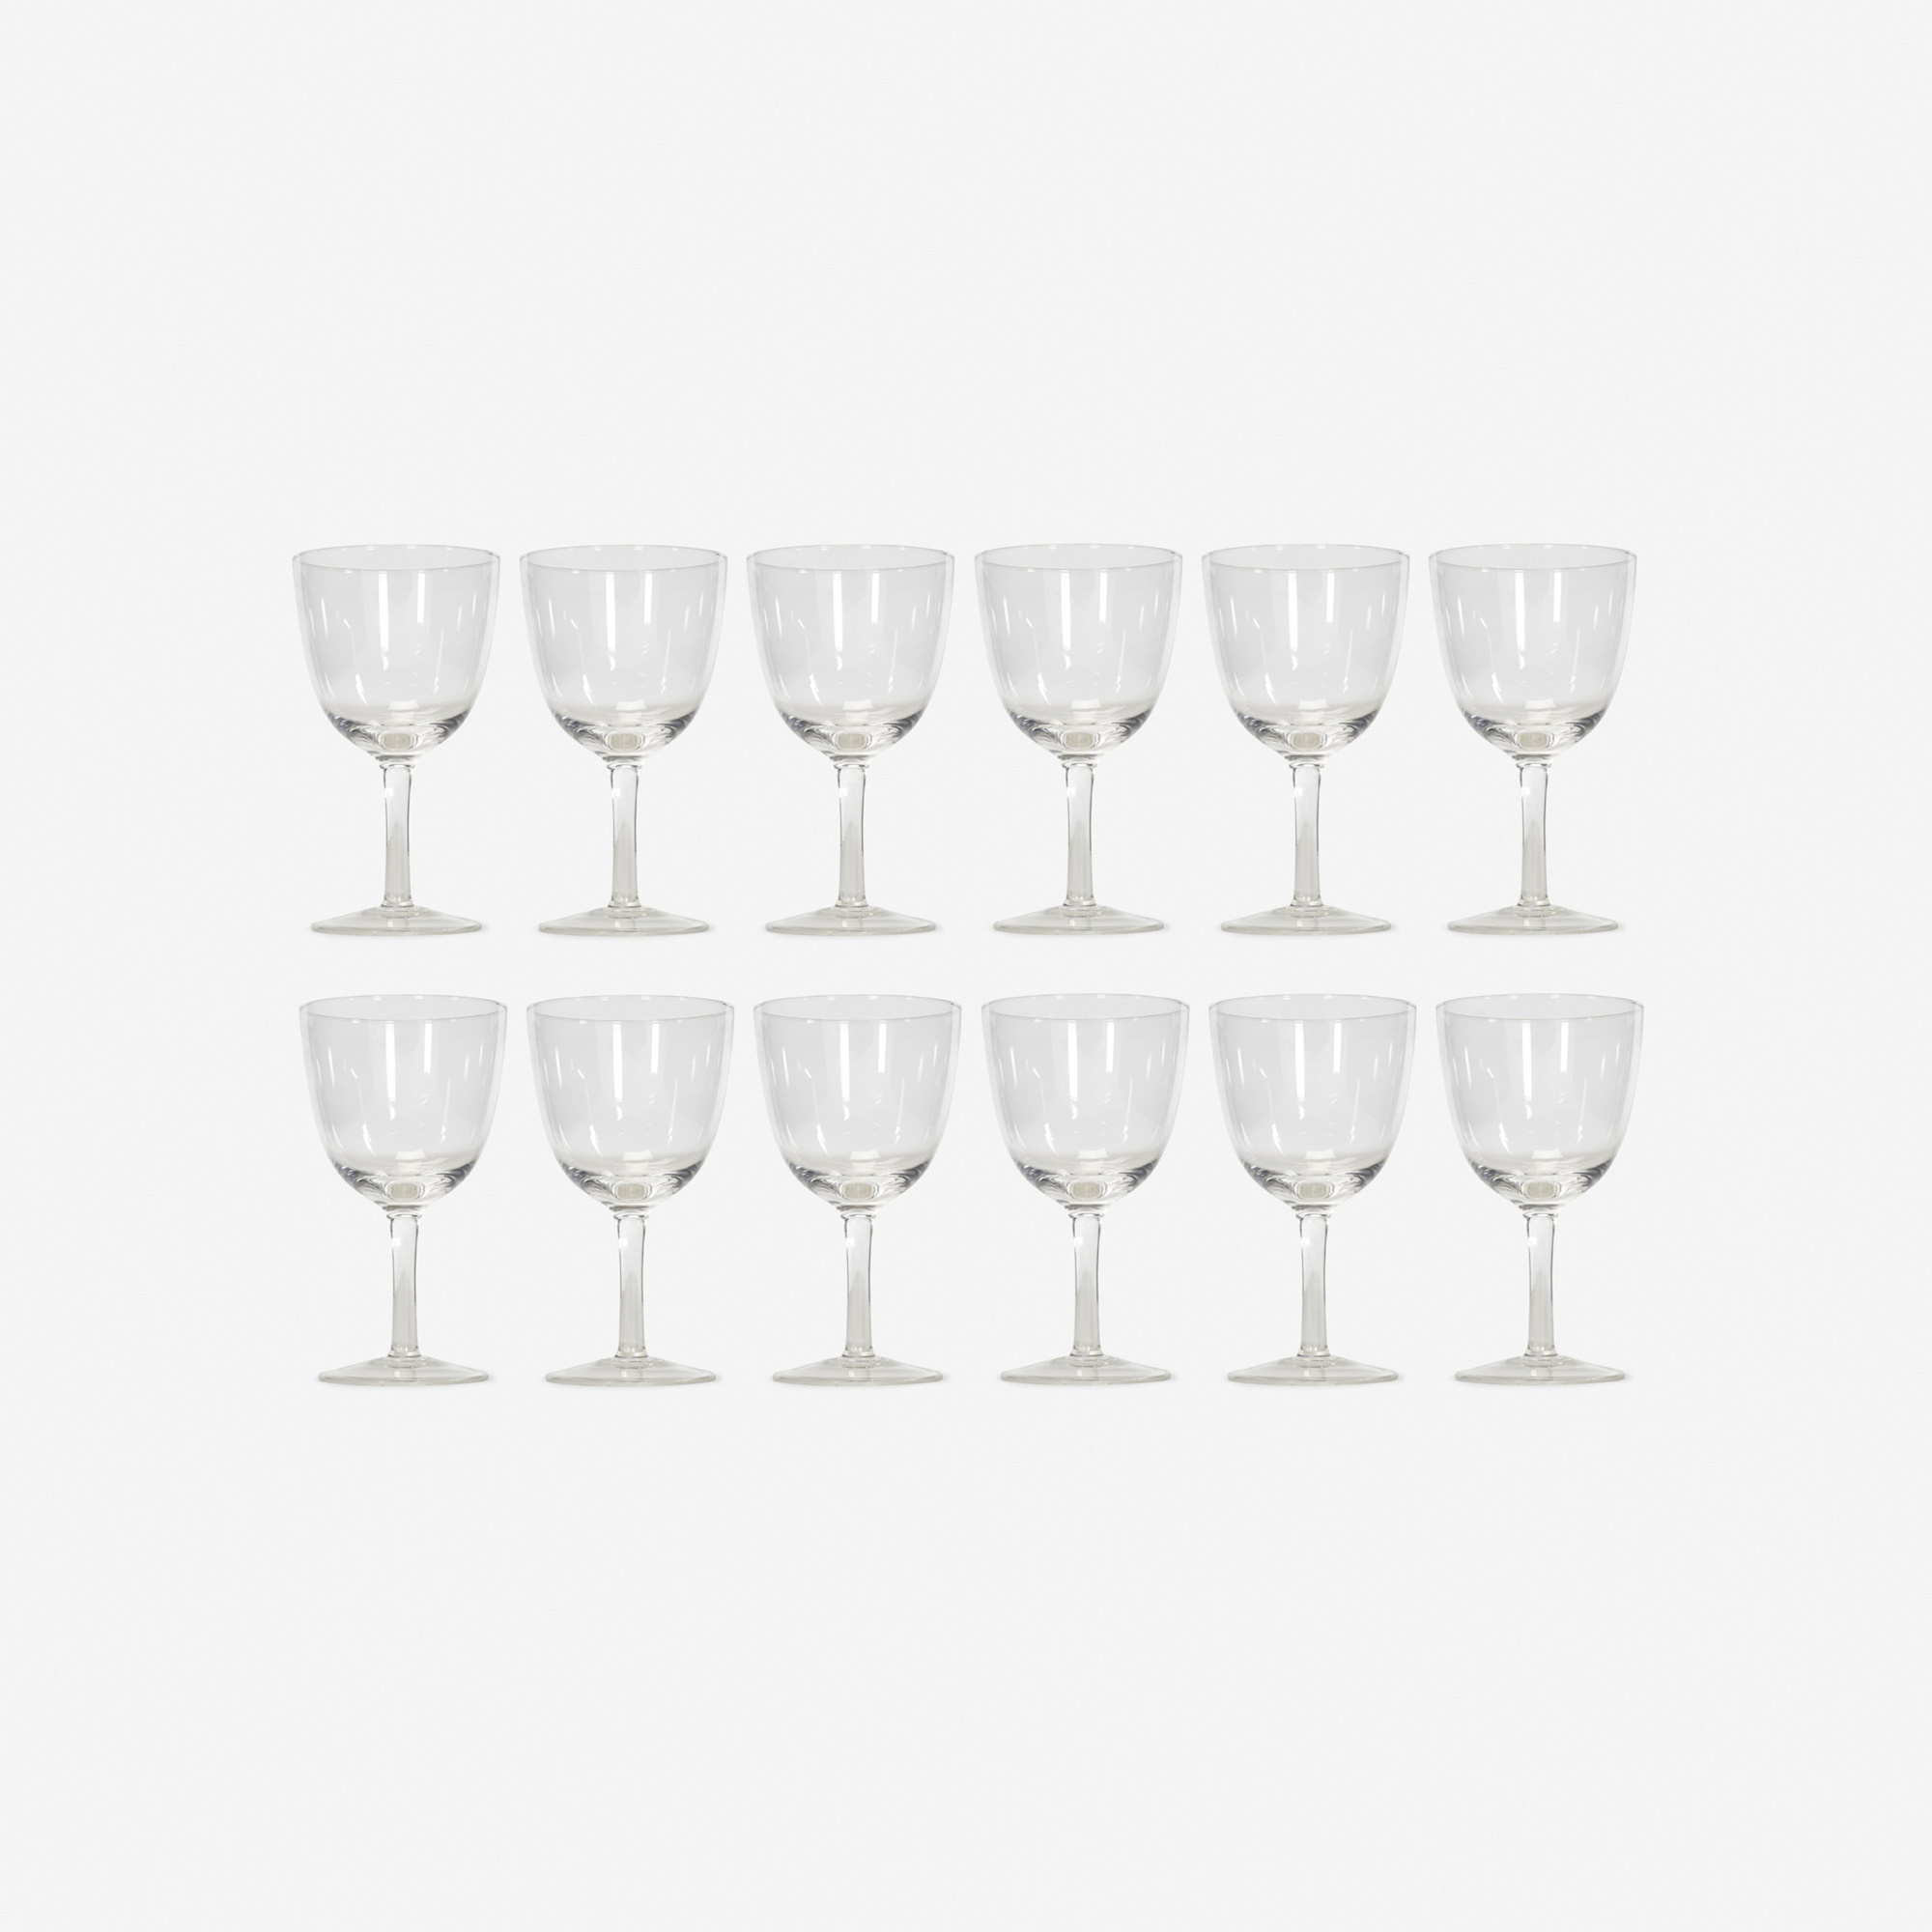 610: Garth and Ada Louise Huxtable / Water glasses from The Four Seasons, set of twelve (1 of 1)